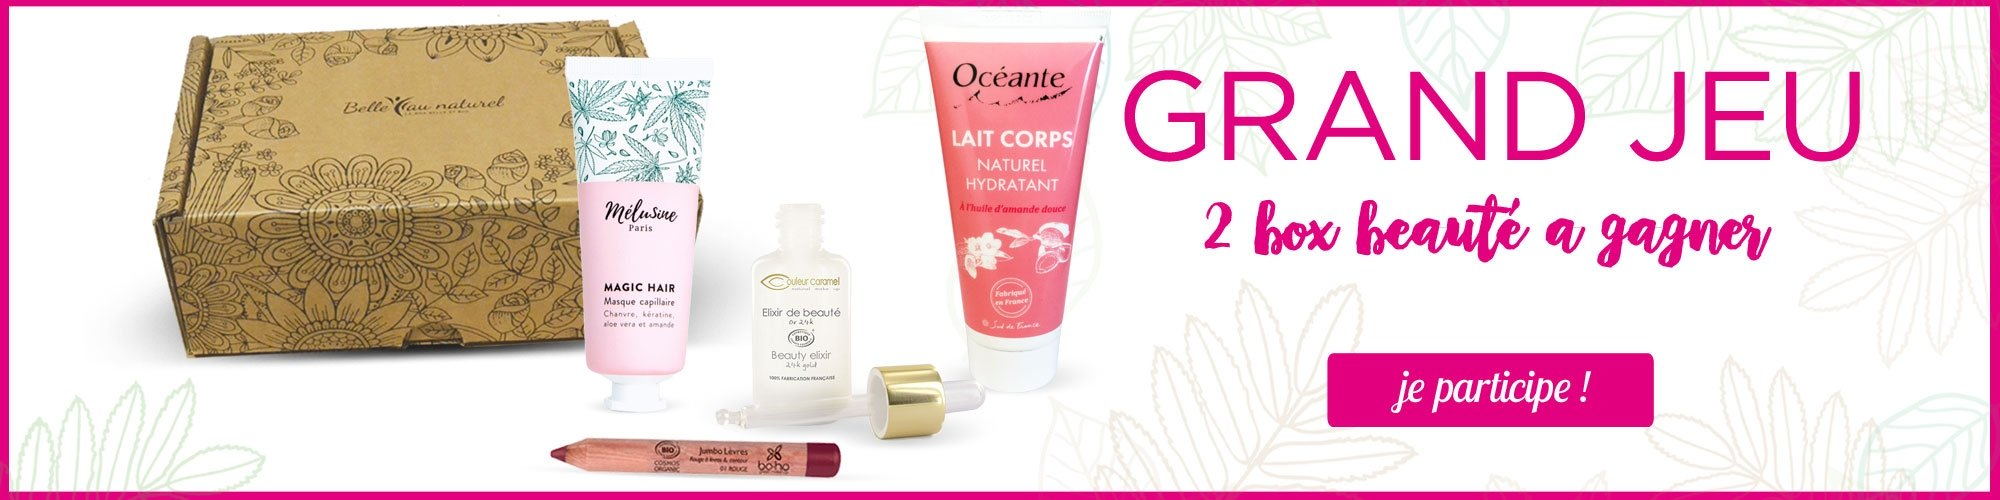 Grand Jeu concours - 2 box beauté à gagner